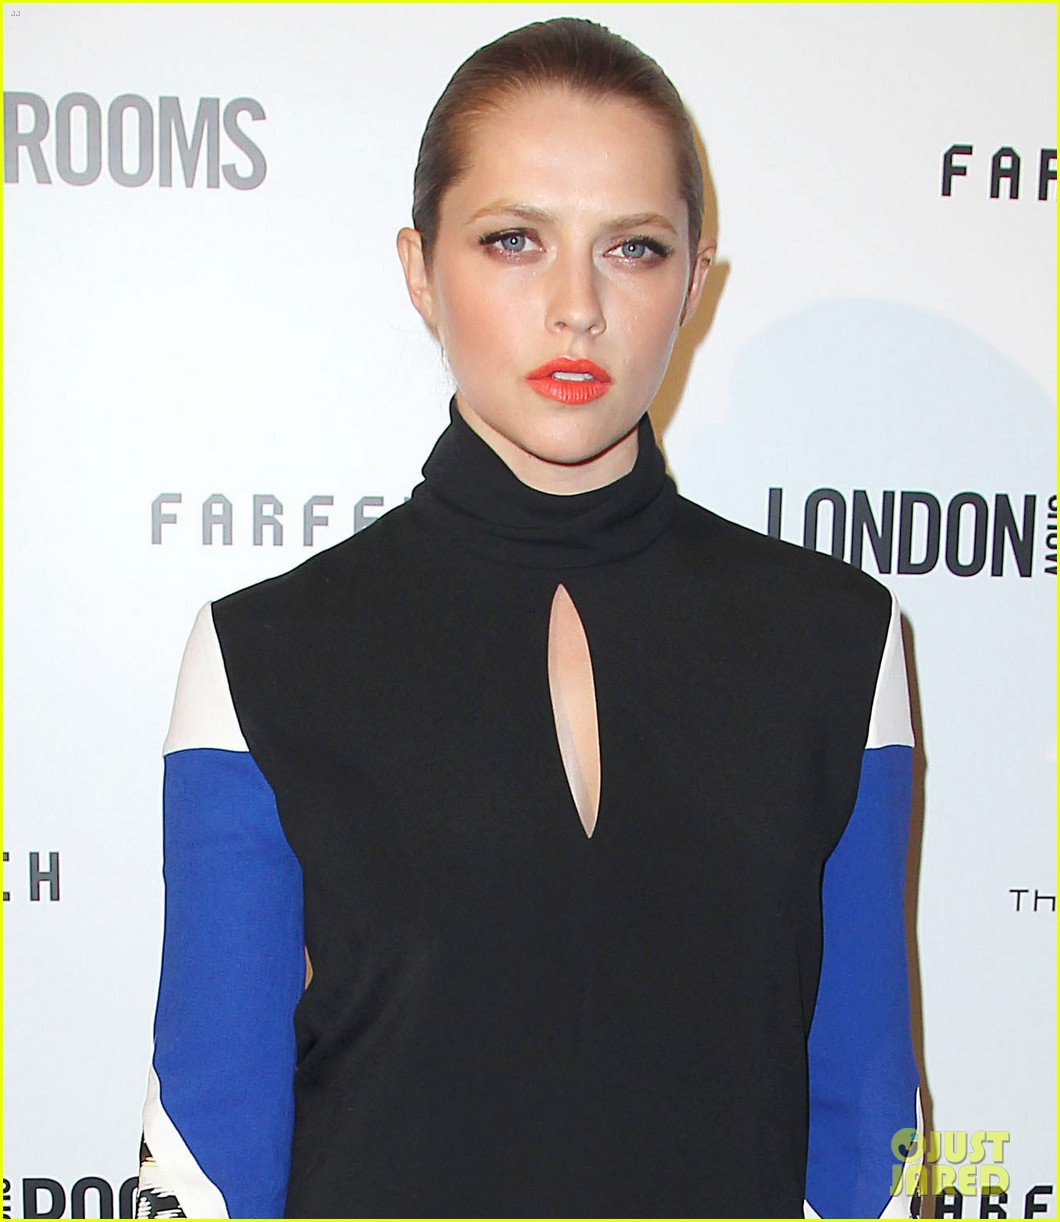 teresa palmer london show rooms l a chic 04